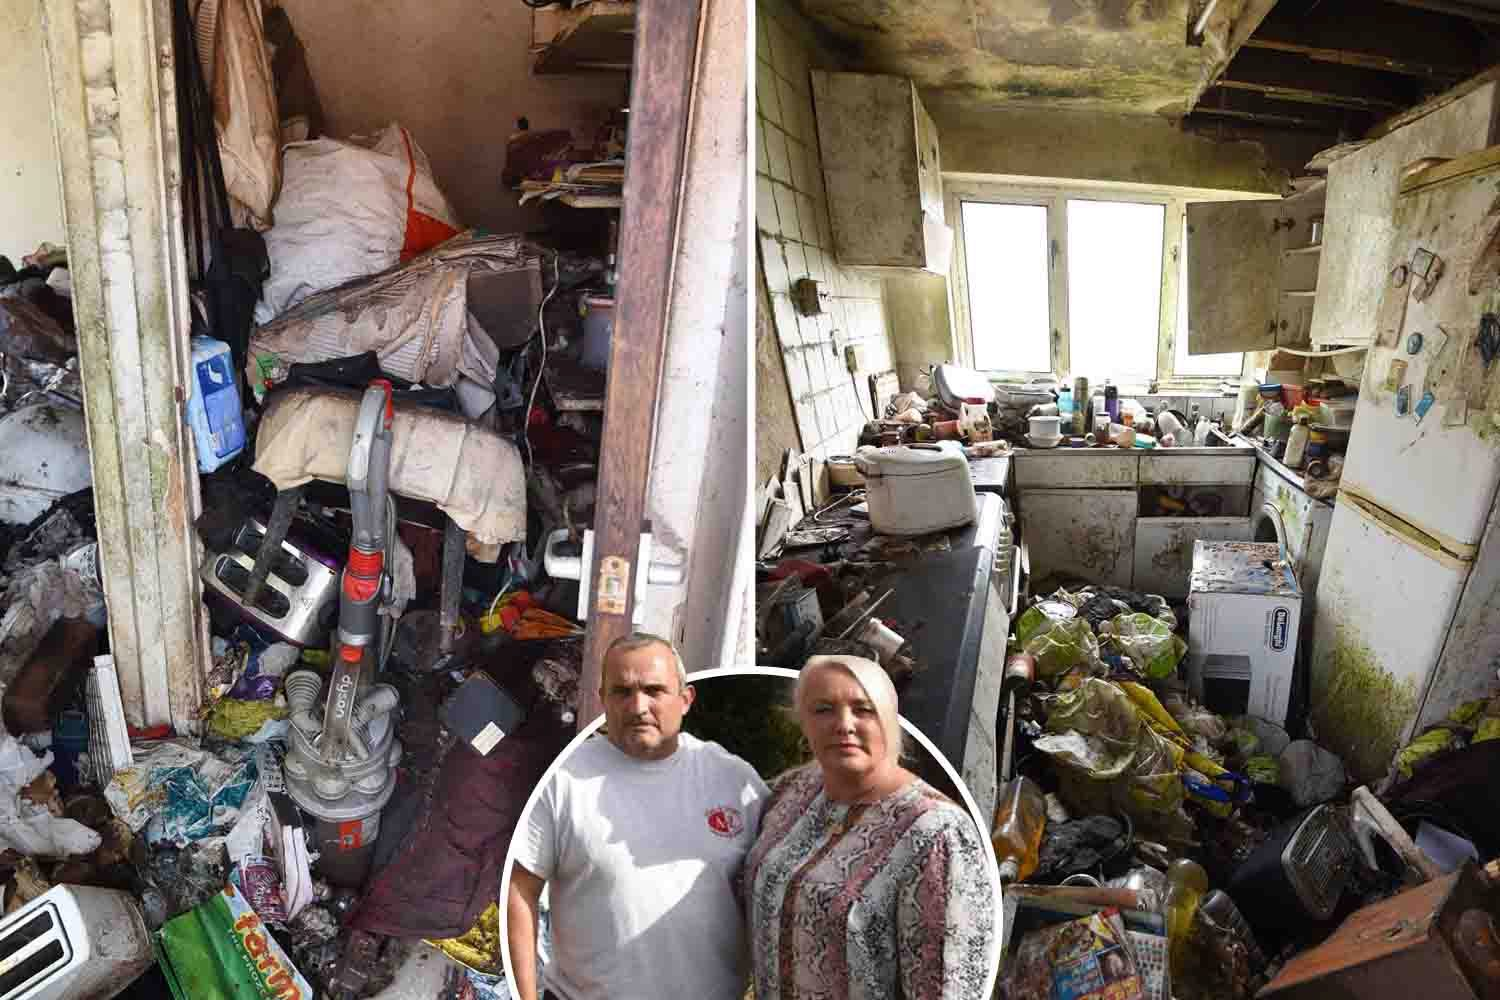 Neighbours' horror at living next to rat-infested hoarder house for 20 years